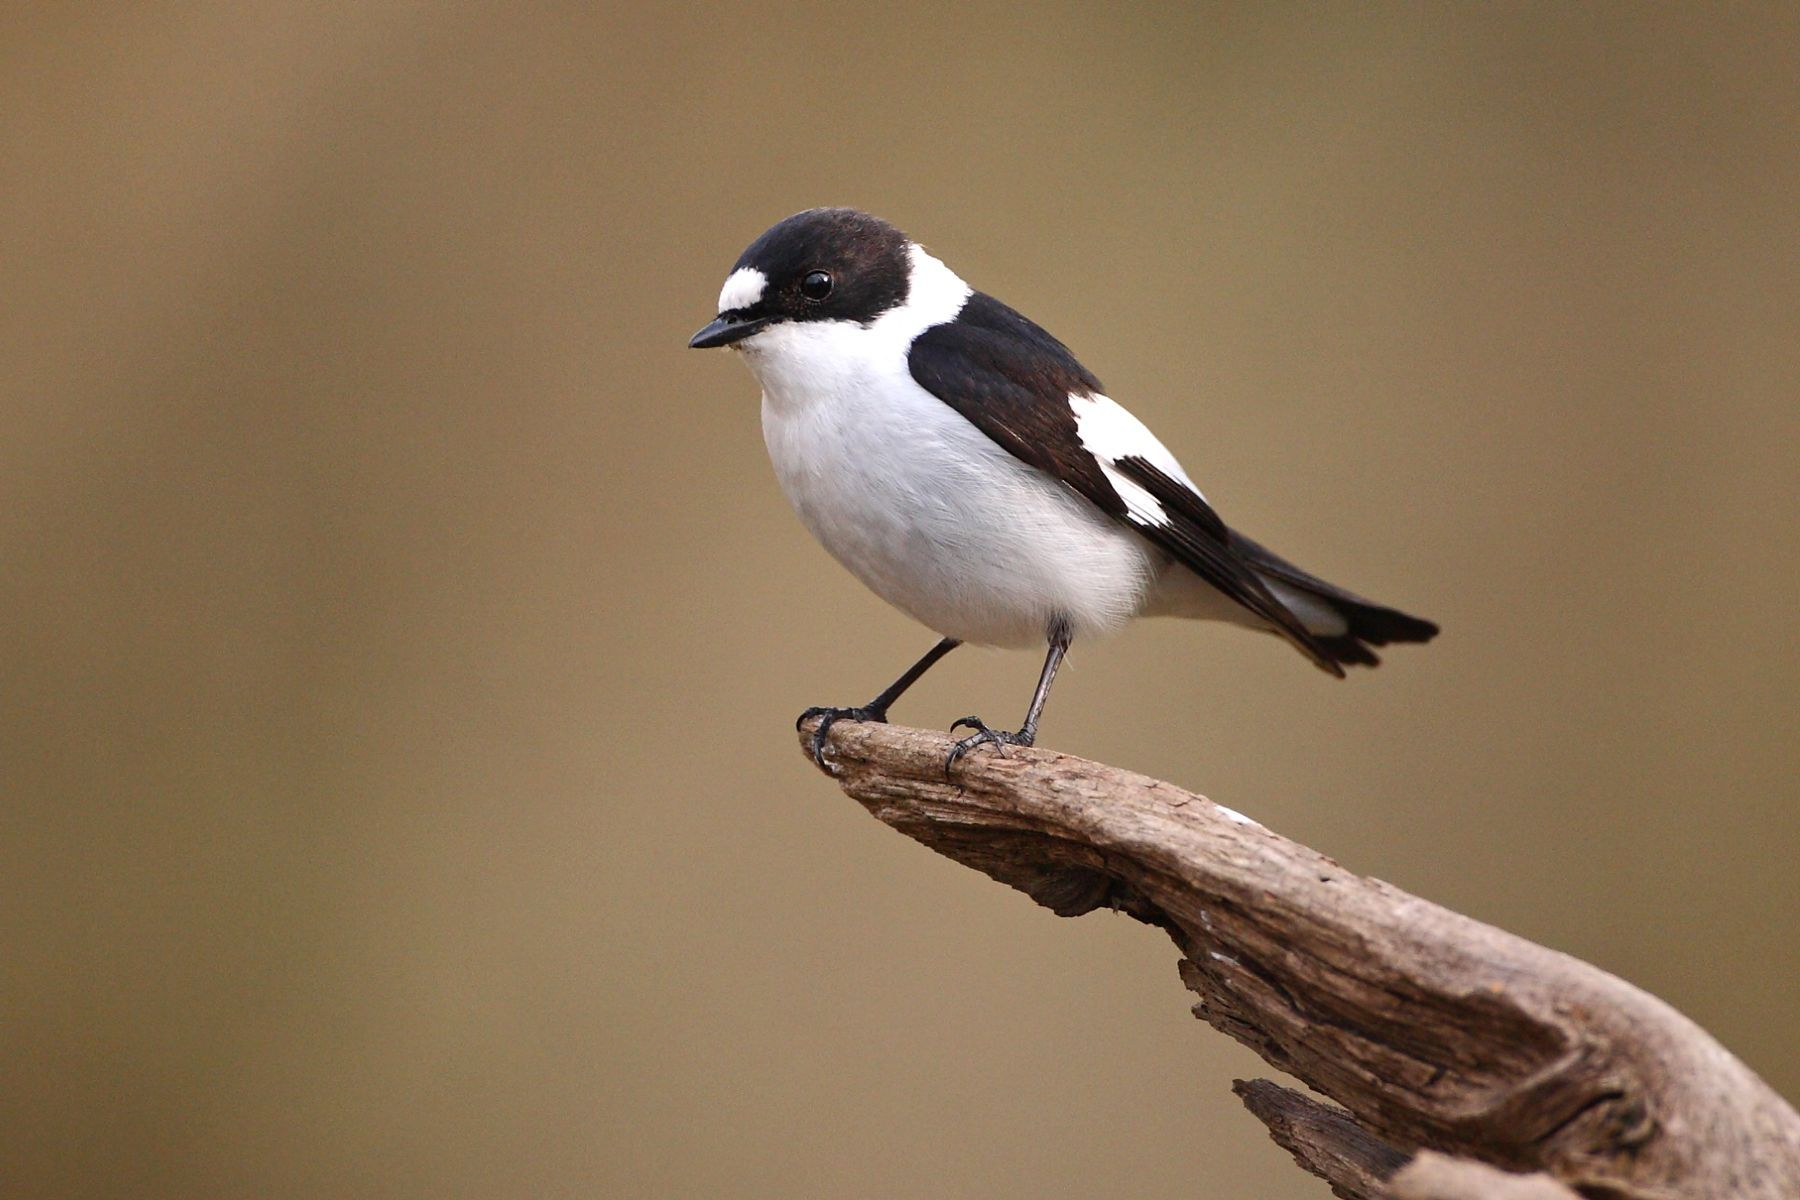 Collared Flycatcher is a bird photographer's classic species